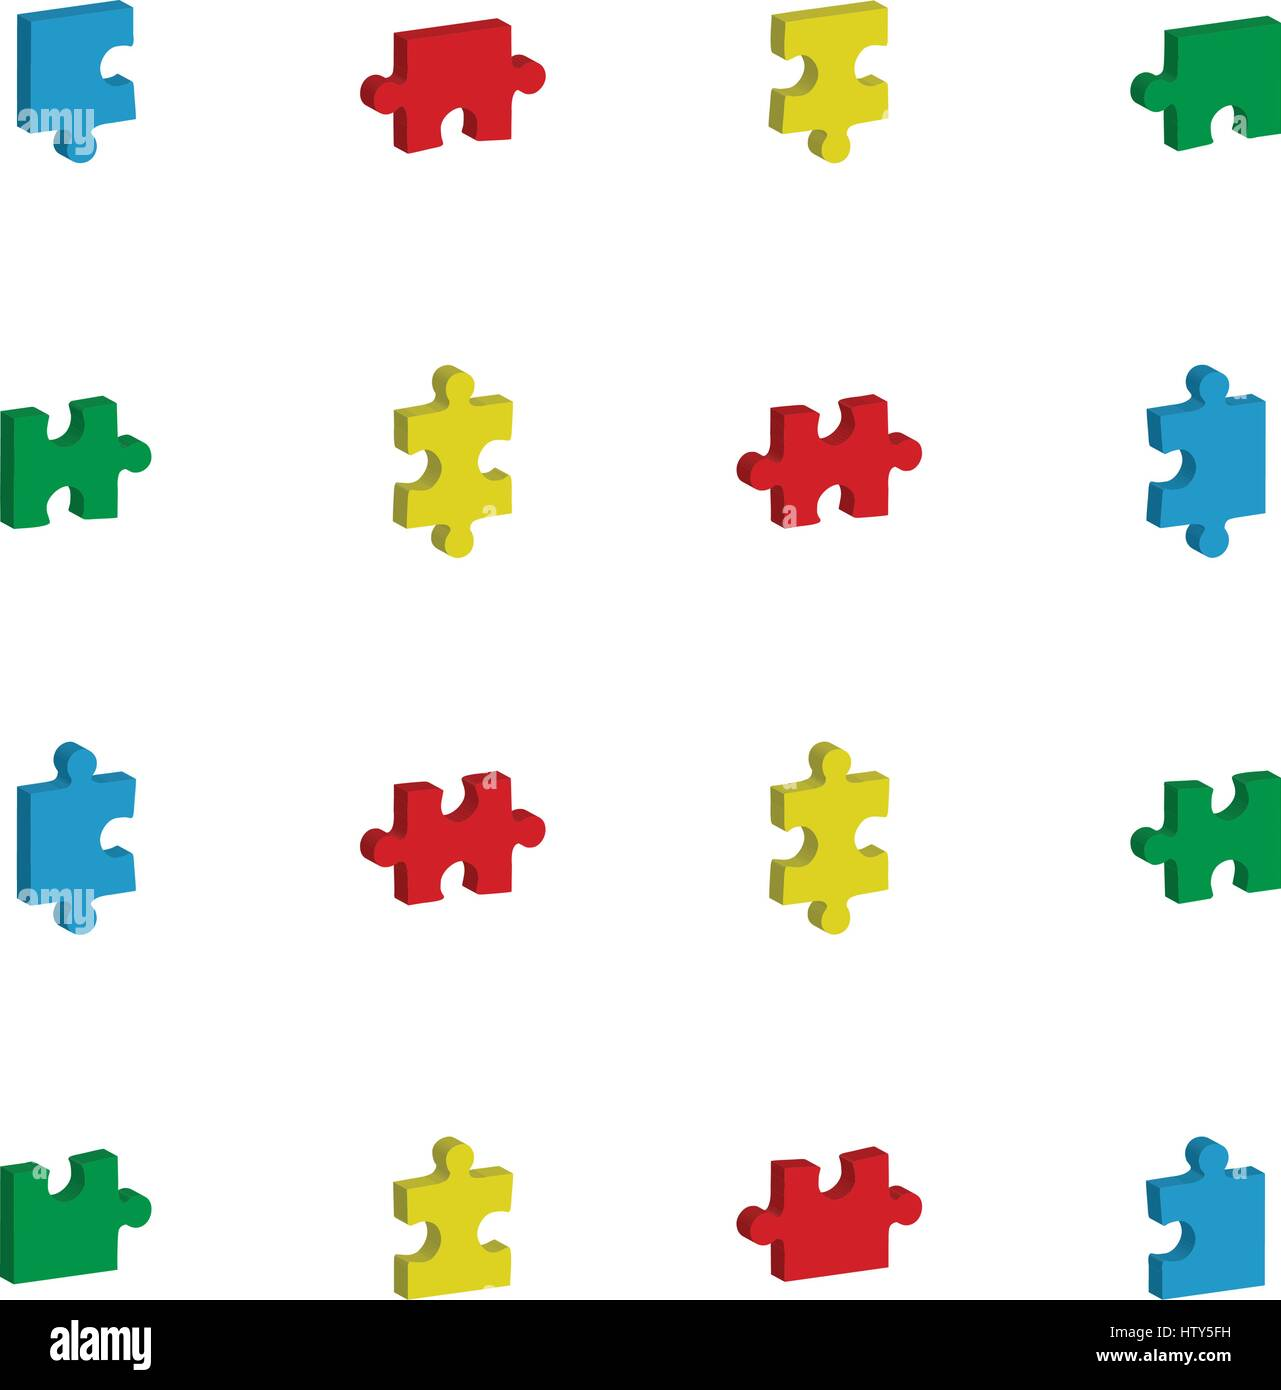 Vector icon set for jigsaw puzzle against white background Stock Vector